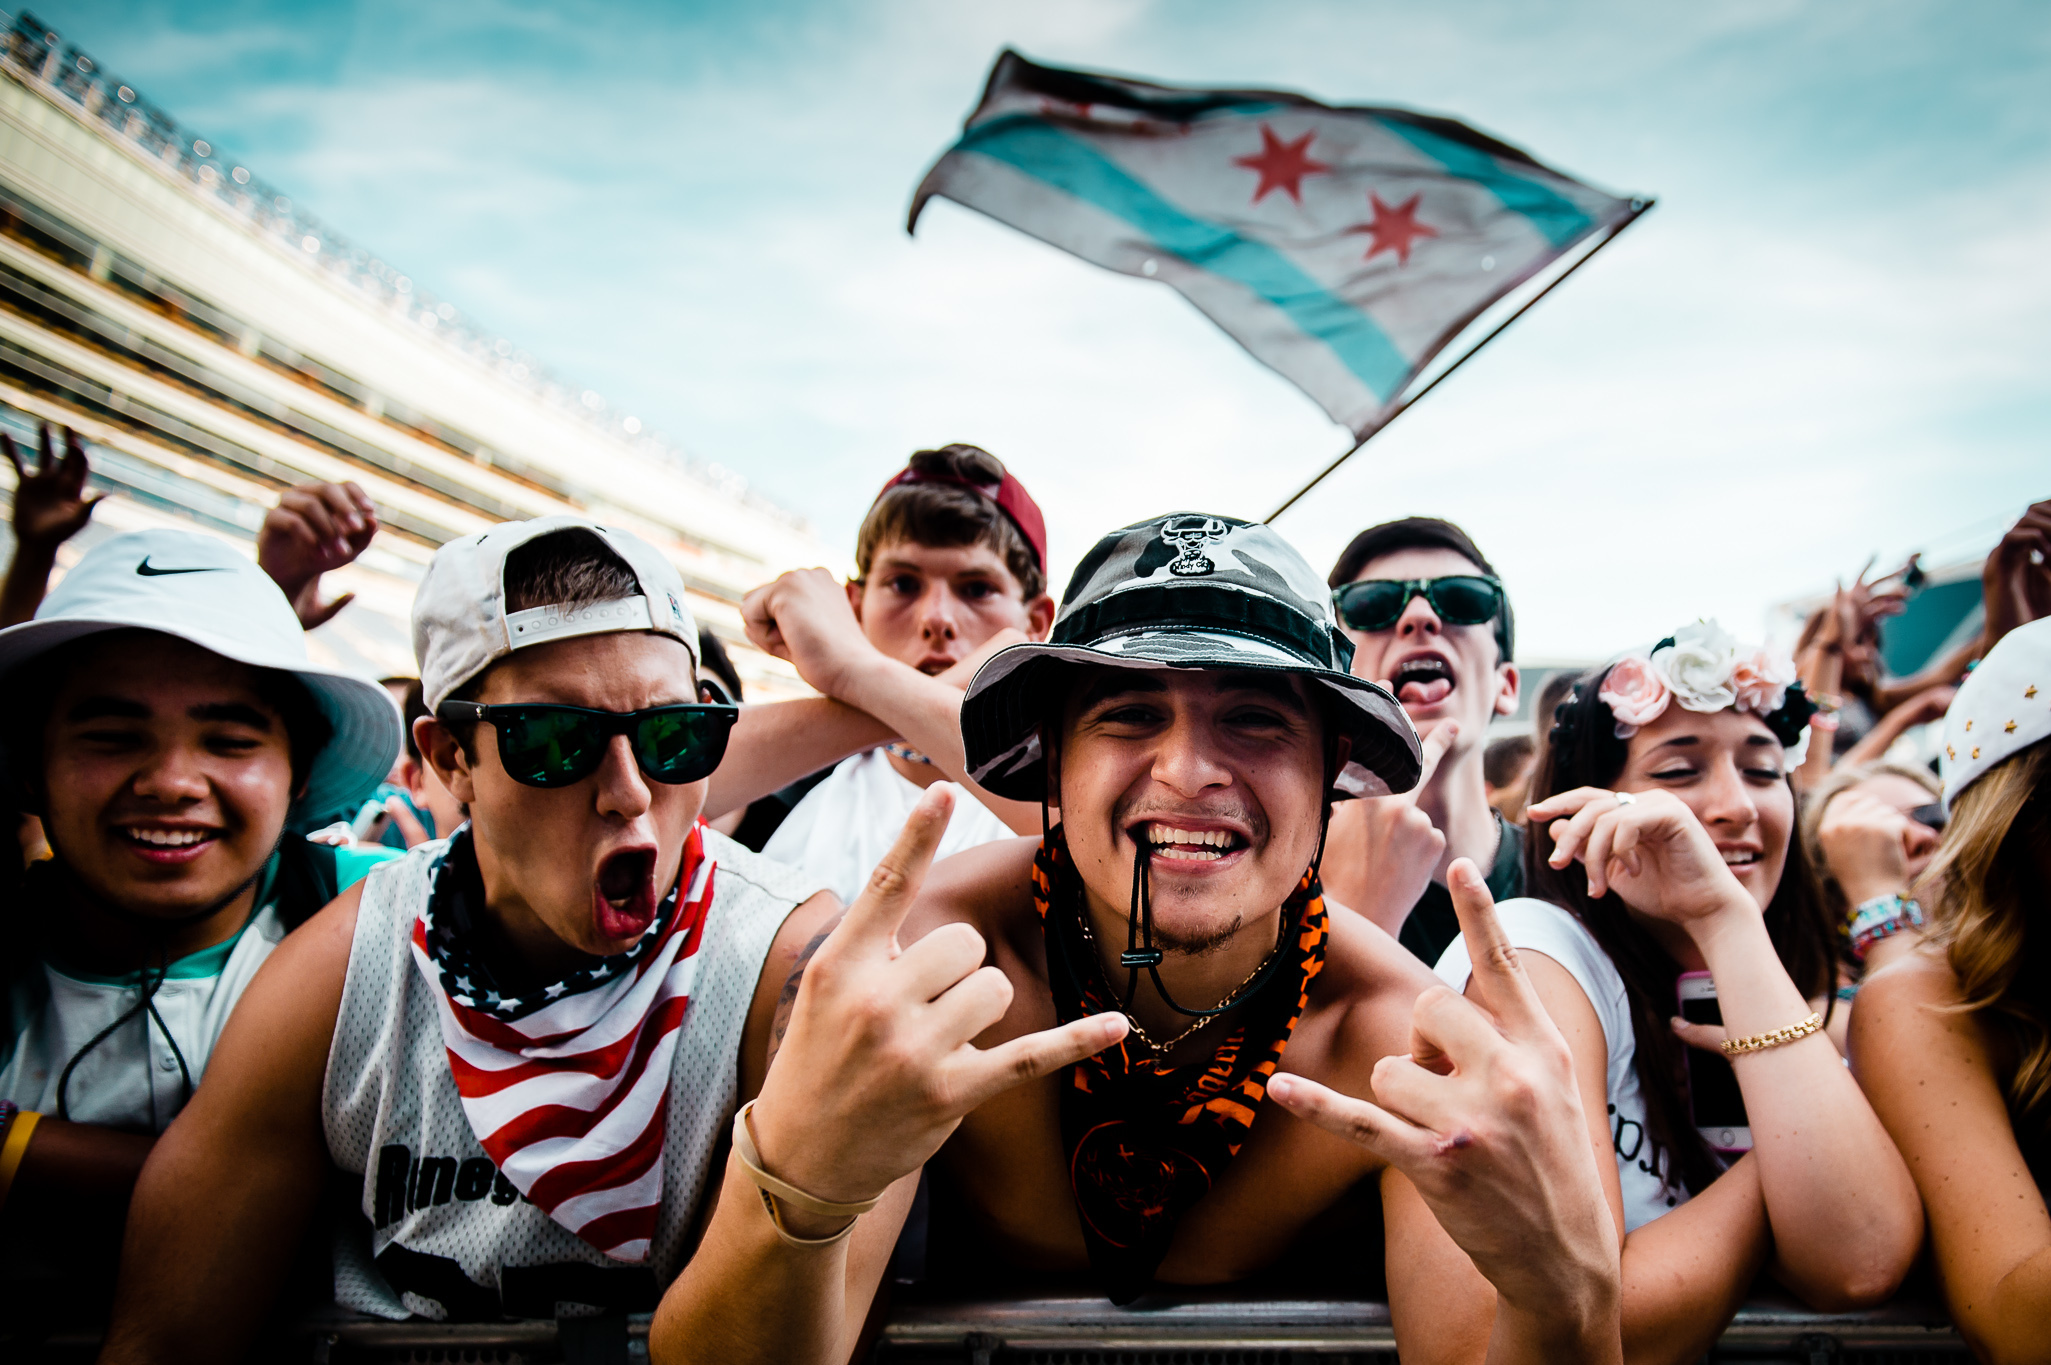 Spring Awakening 2014, Saturday: Crowd photos